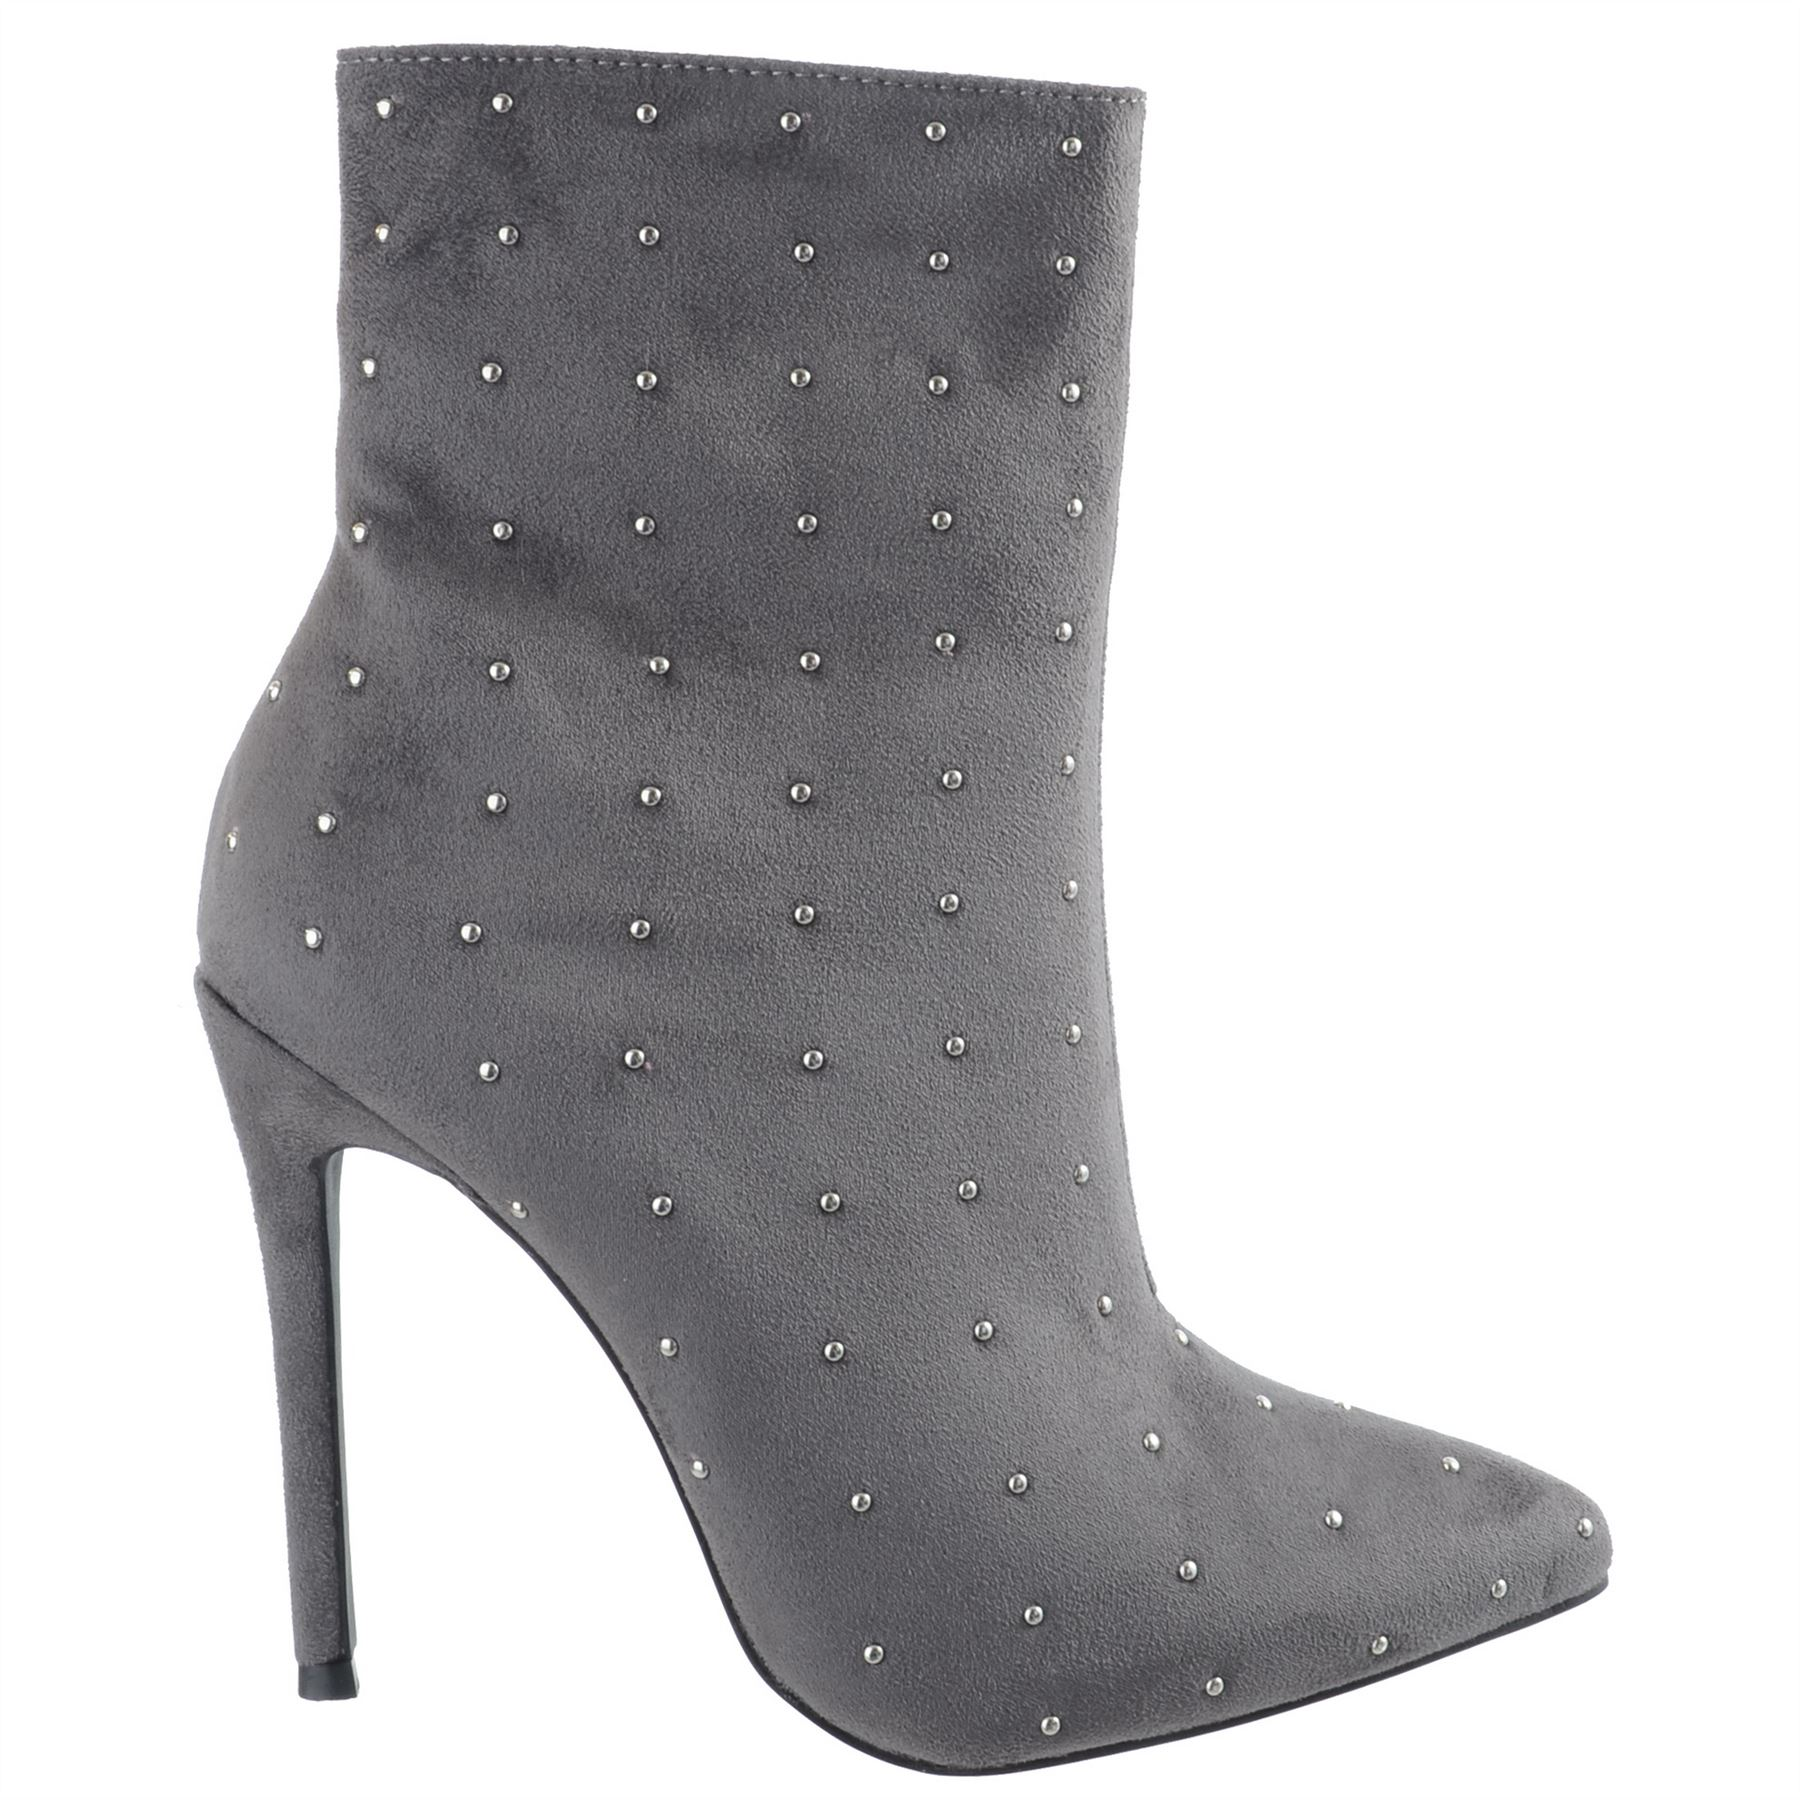 Ladies-Womens-High-Stiletto-Heel-Pointy-Toe-Zip-Up-Ankle-Boots-Shoes-Size-3-8 miniatuur 6